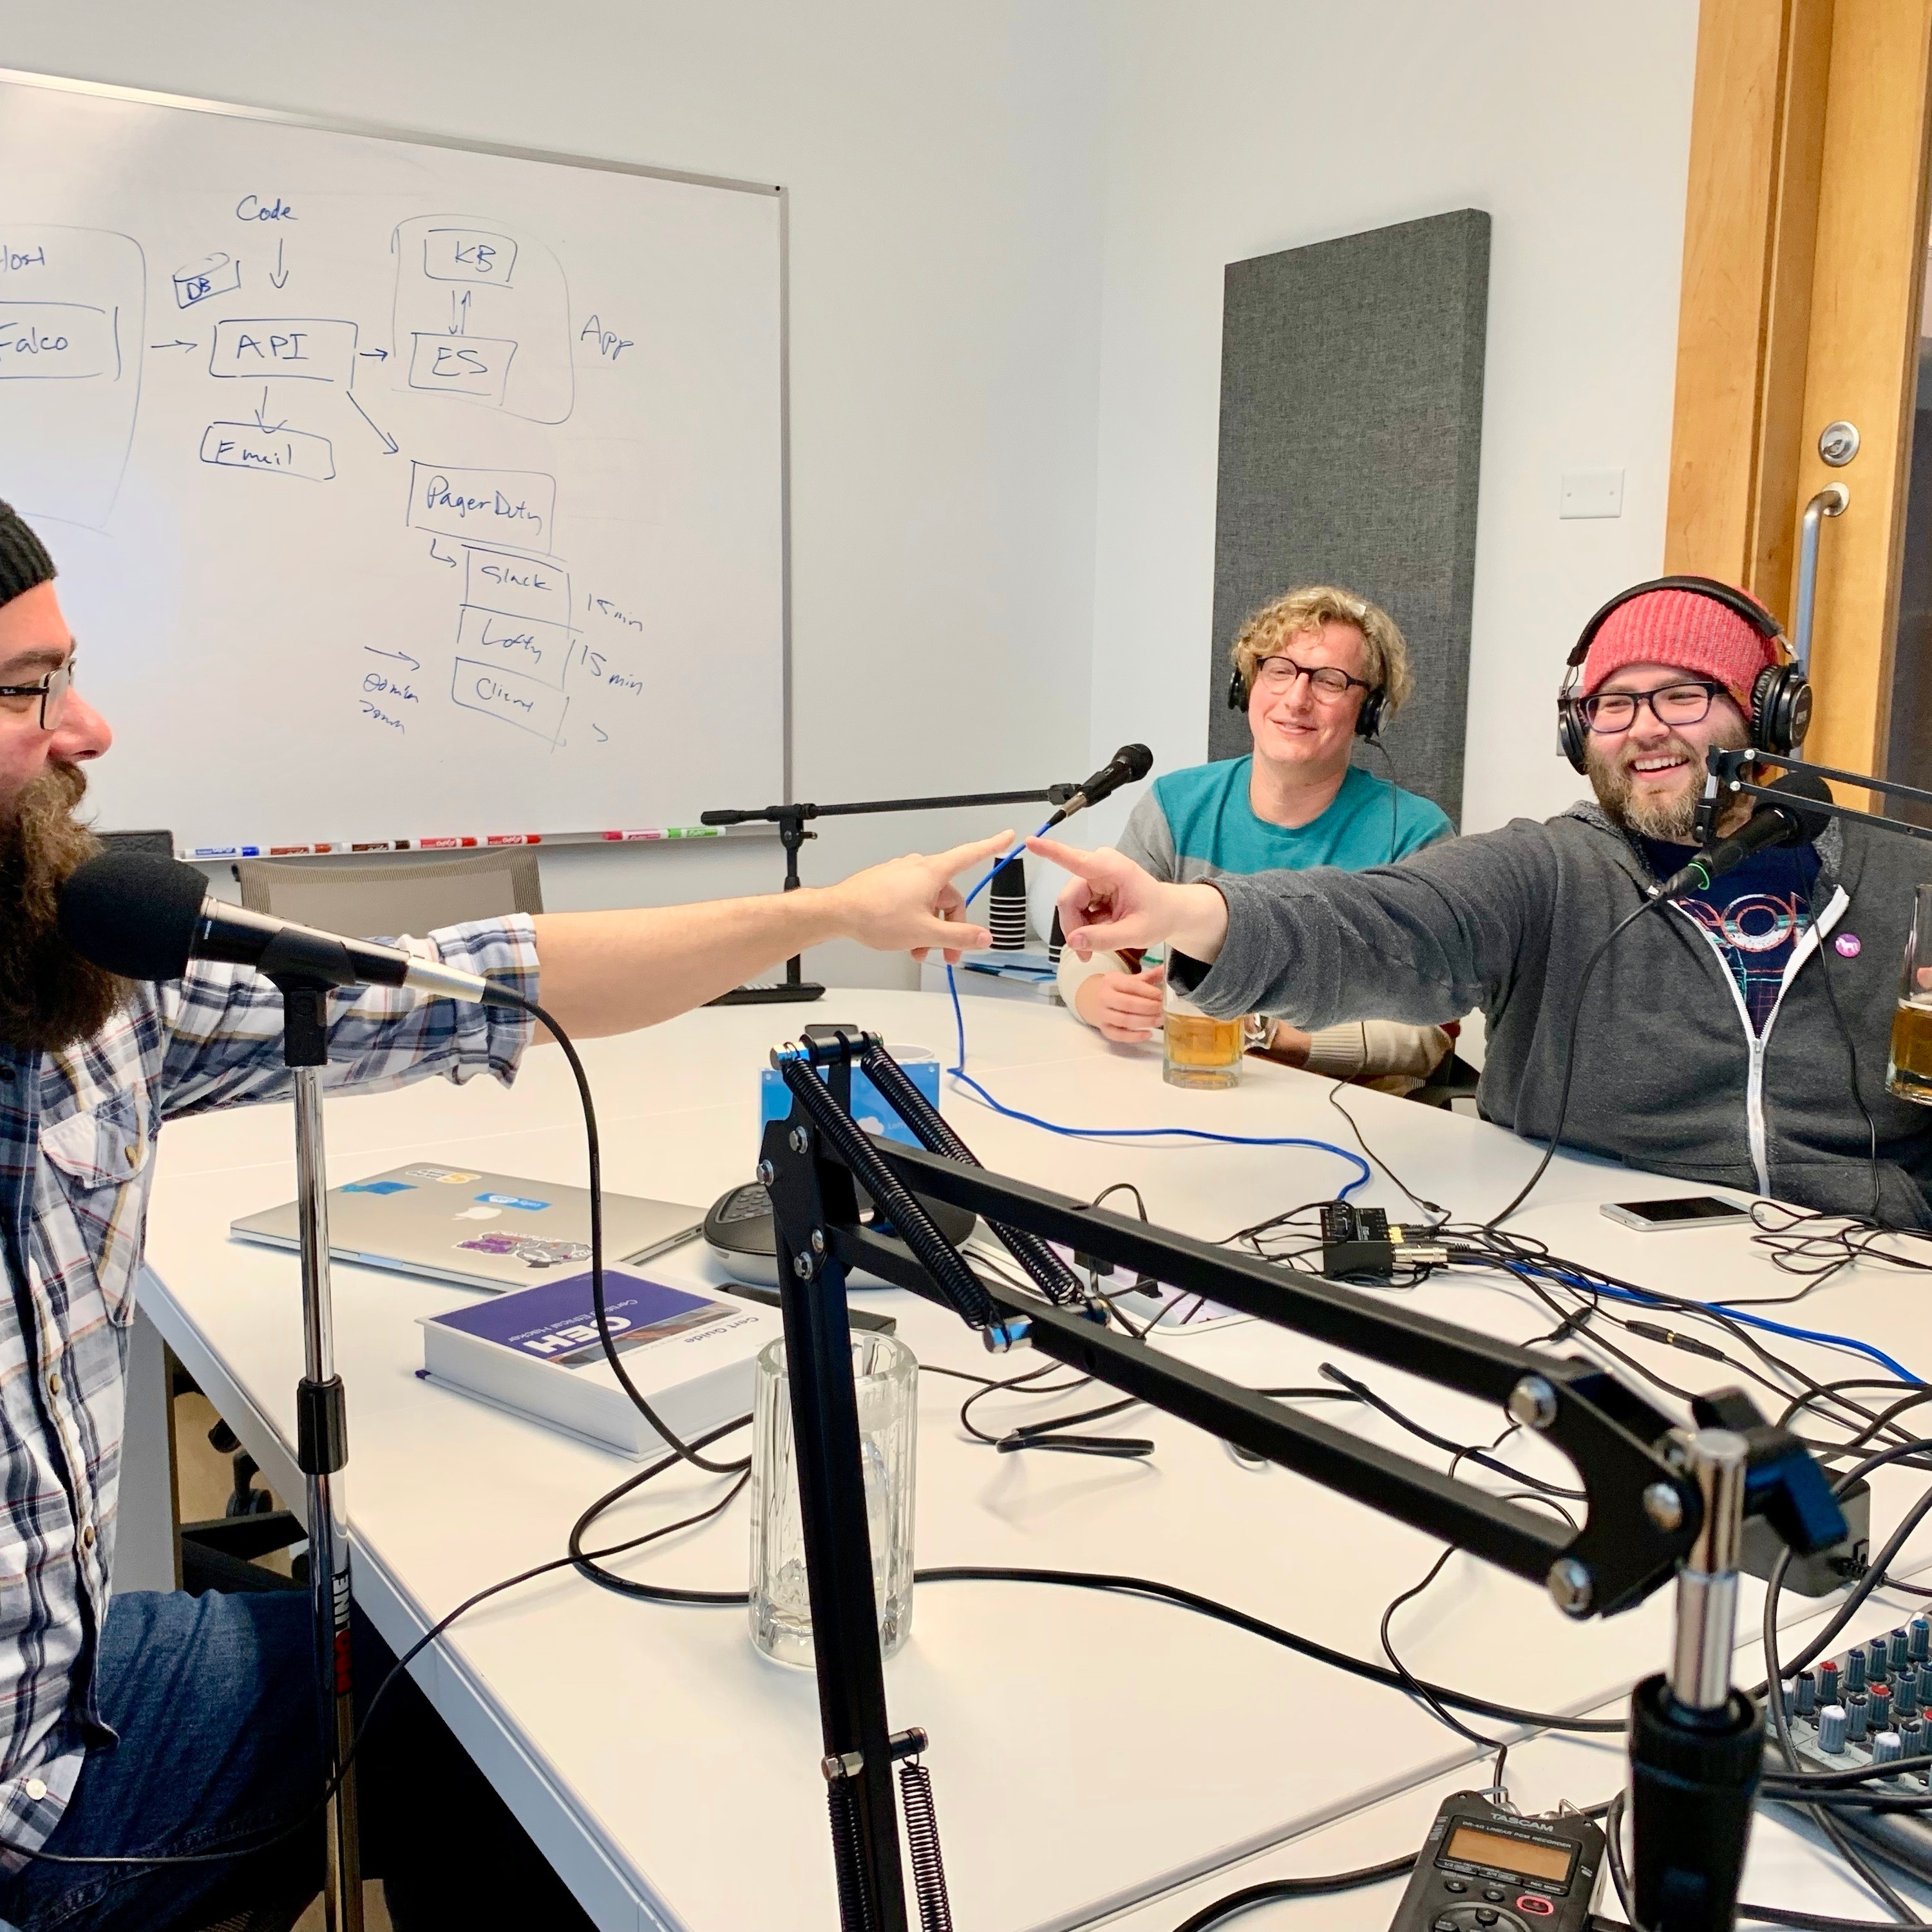 AppSec roundtable and Blake-shaming w/ guest Chris Hobbs